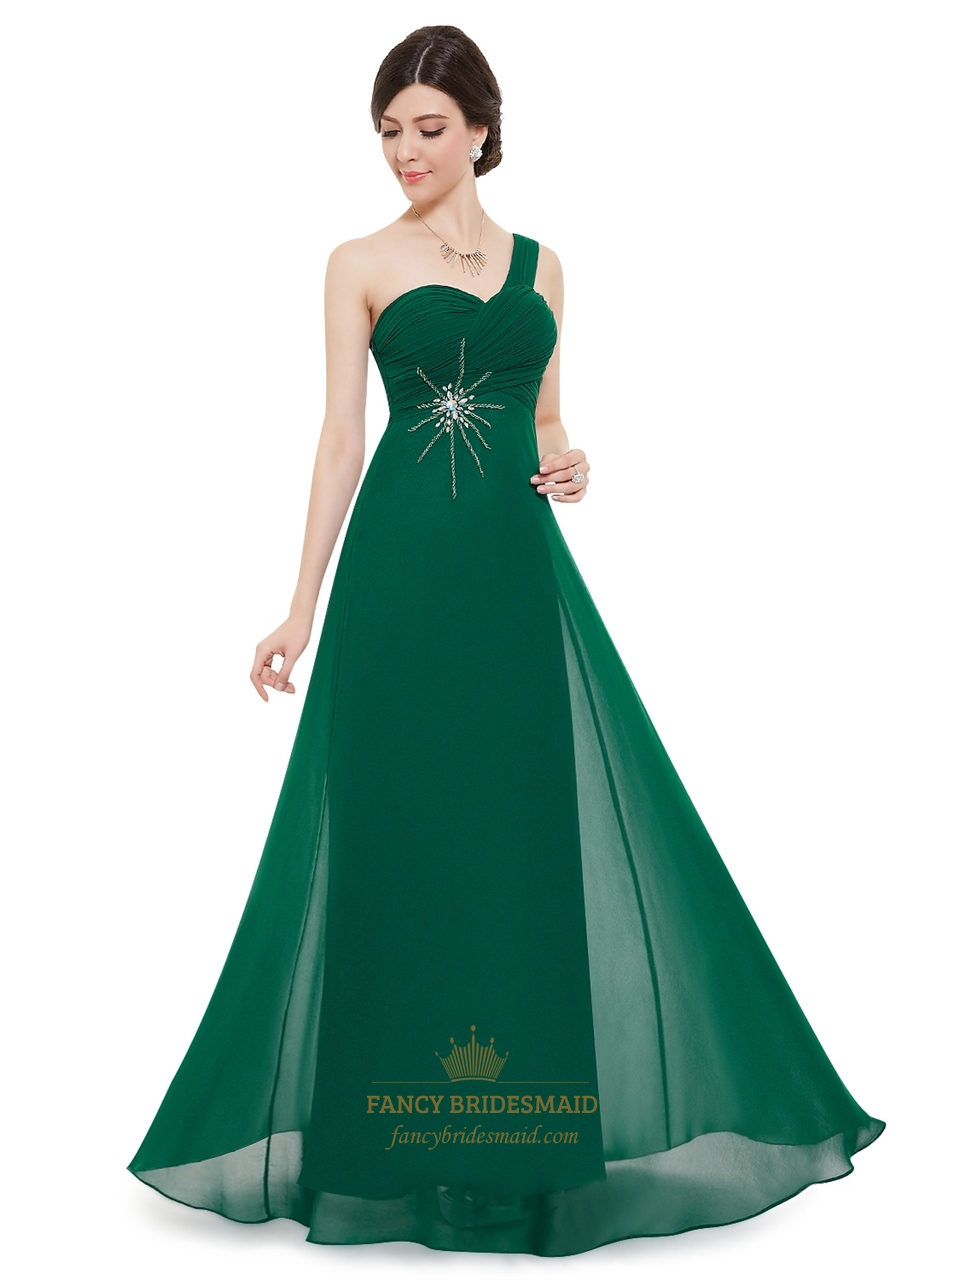 Emerald Green Bridesmaids Dresses with Straps